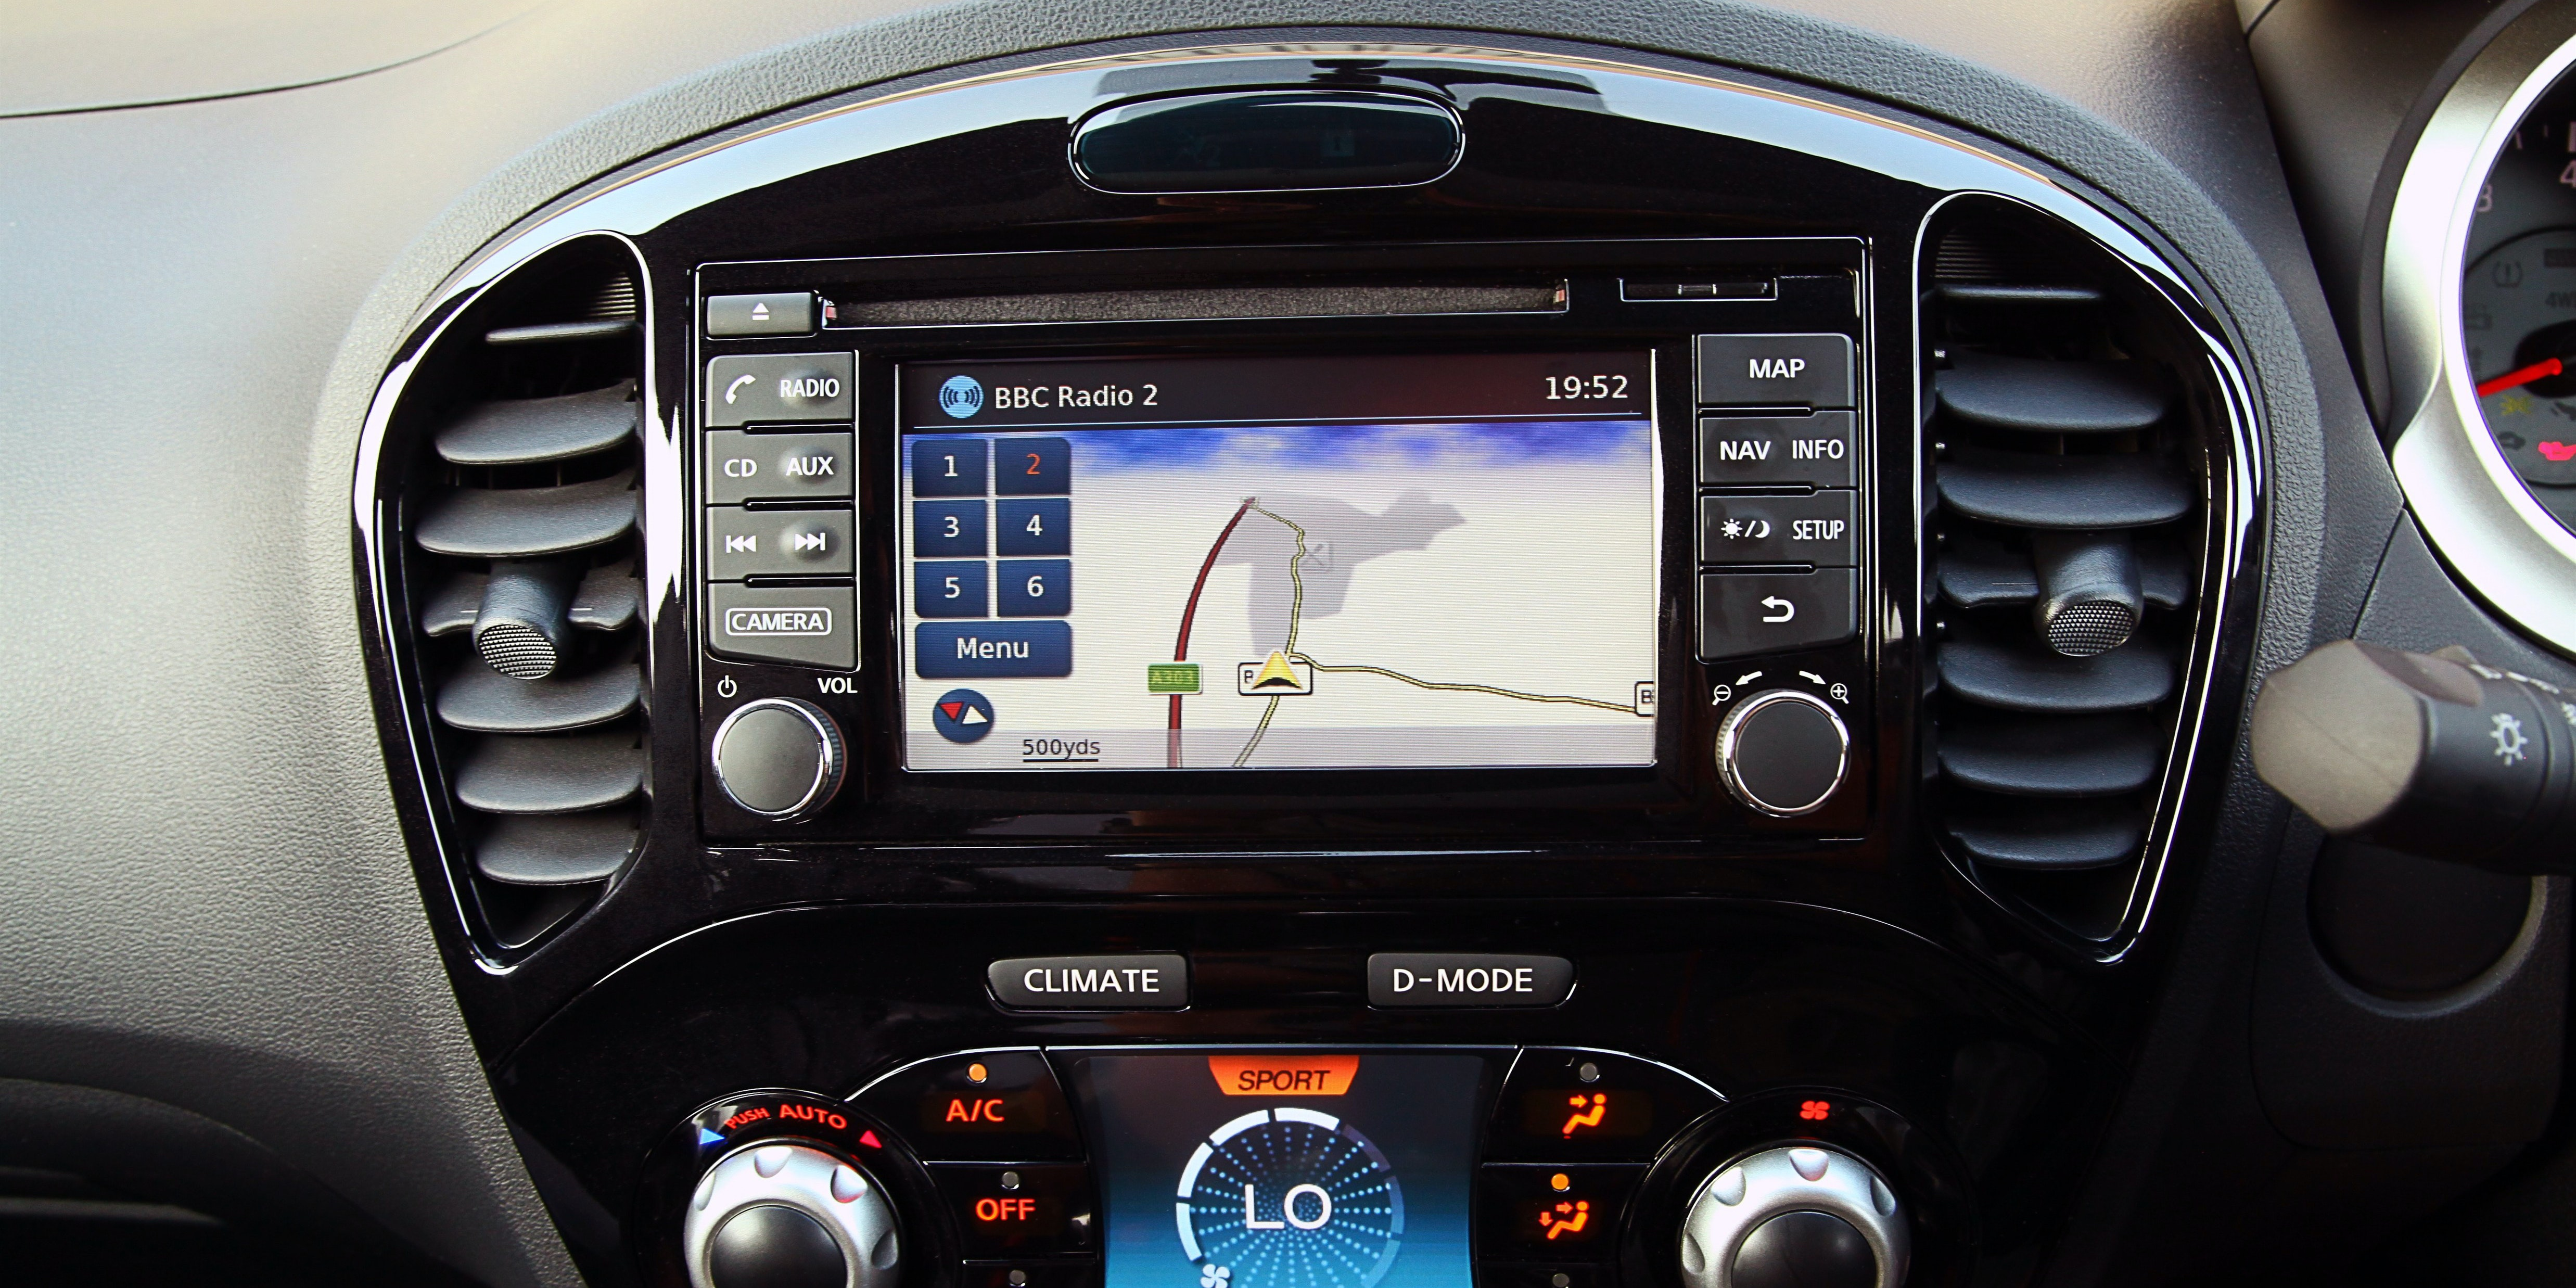 Nissan Juke 2013 Radio Wiring Diagram 37 Images Frontier Stereo 122505 Jukeixlibrb 110fitcropw